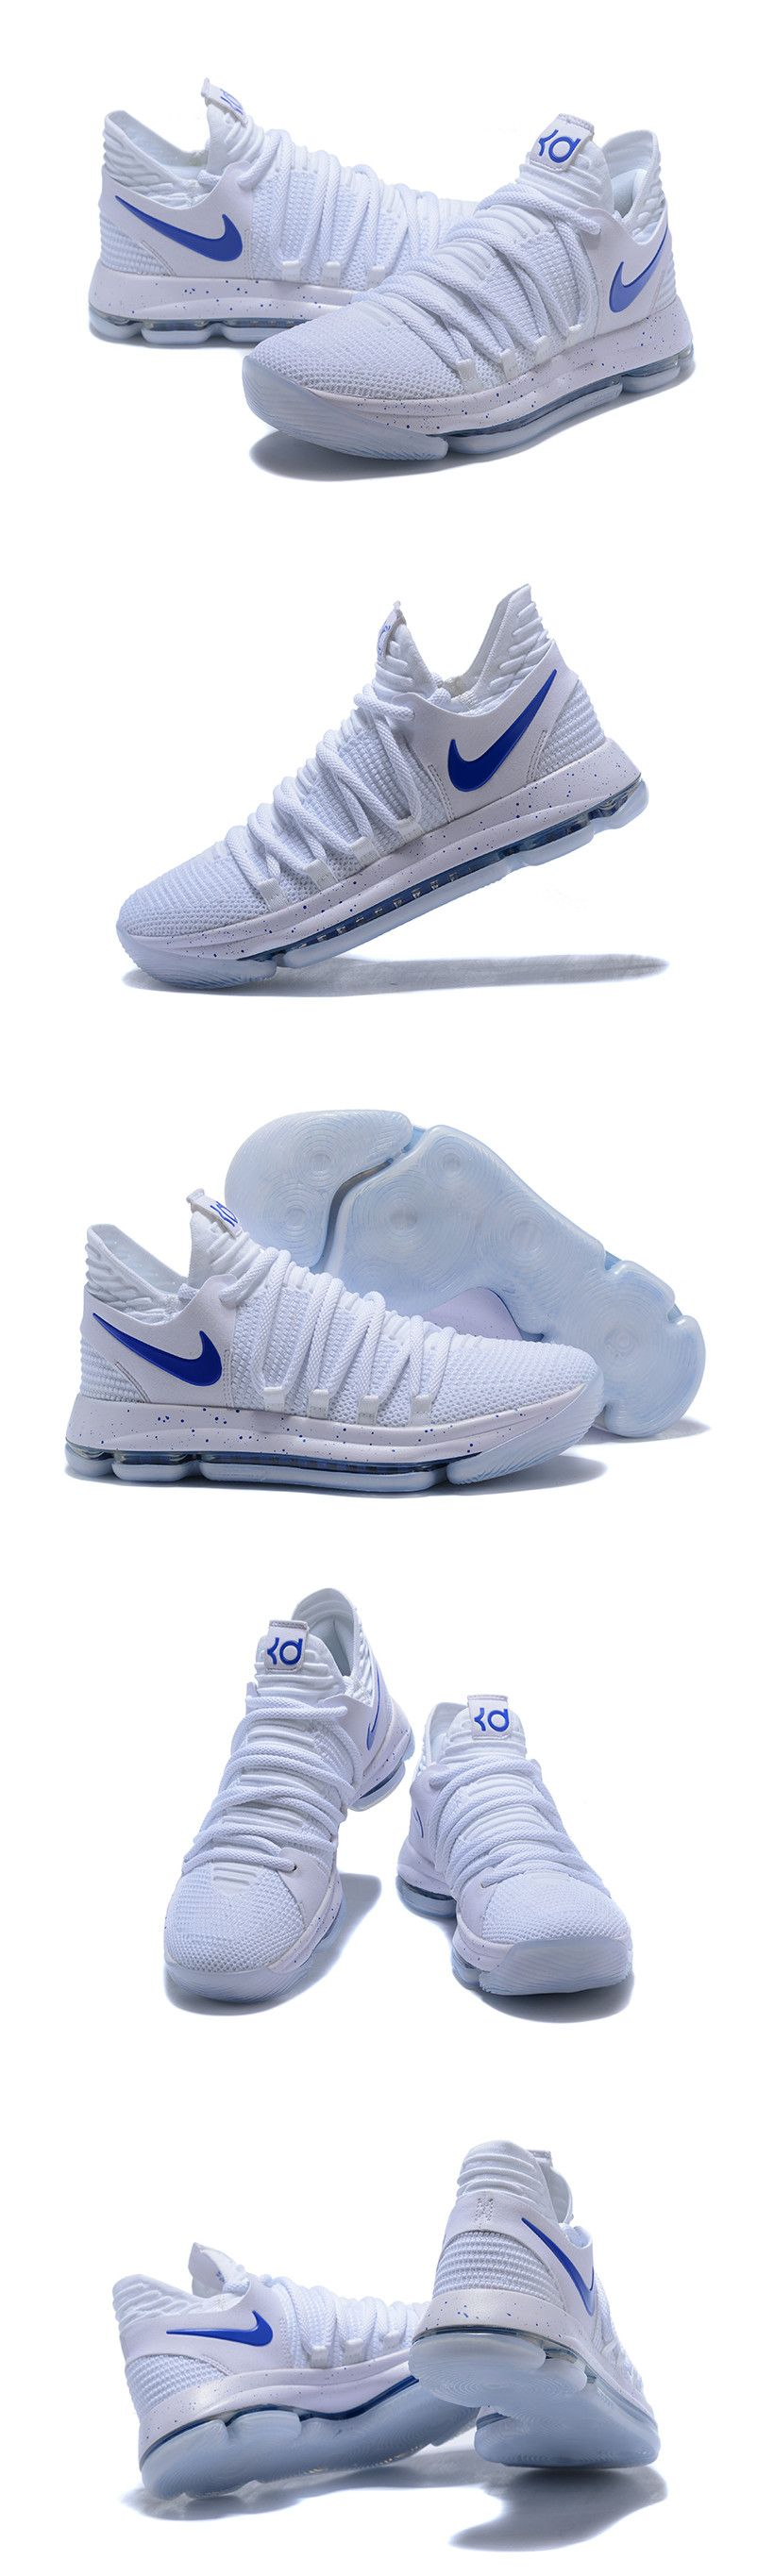 save off d7ef3 74d39  Kevin Durant  Basketball DYNAMIC, LOCKED-IN COMFORT. With on-demand  support and ultra-responsive cushioning that outperforms wherever you play,  the Nike ...